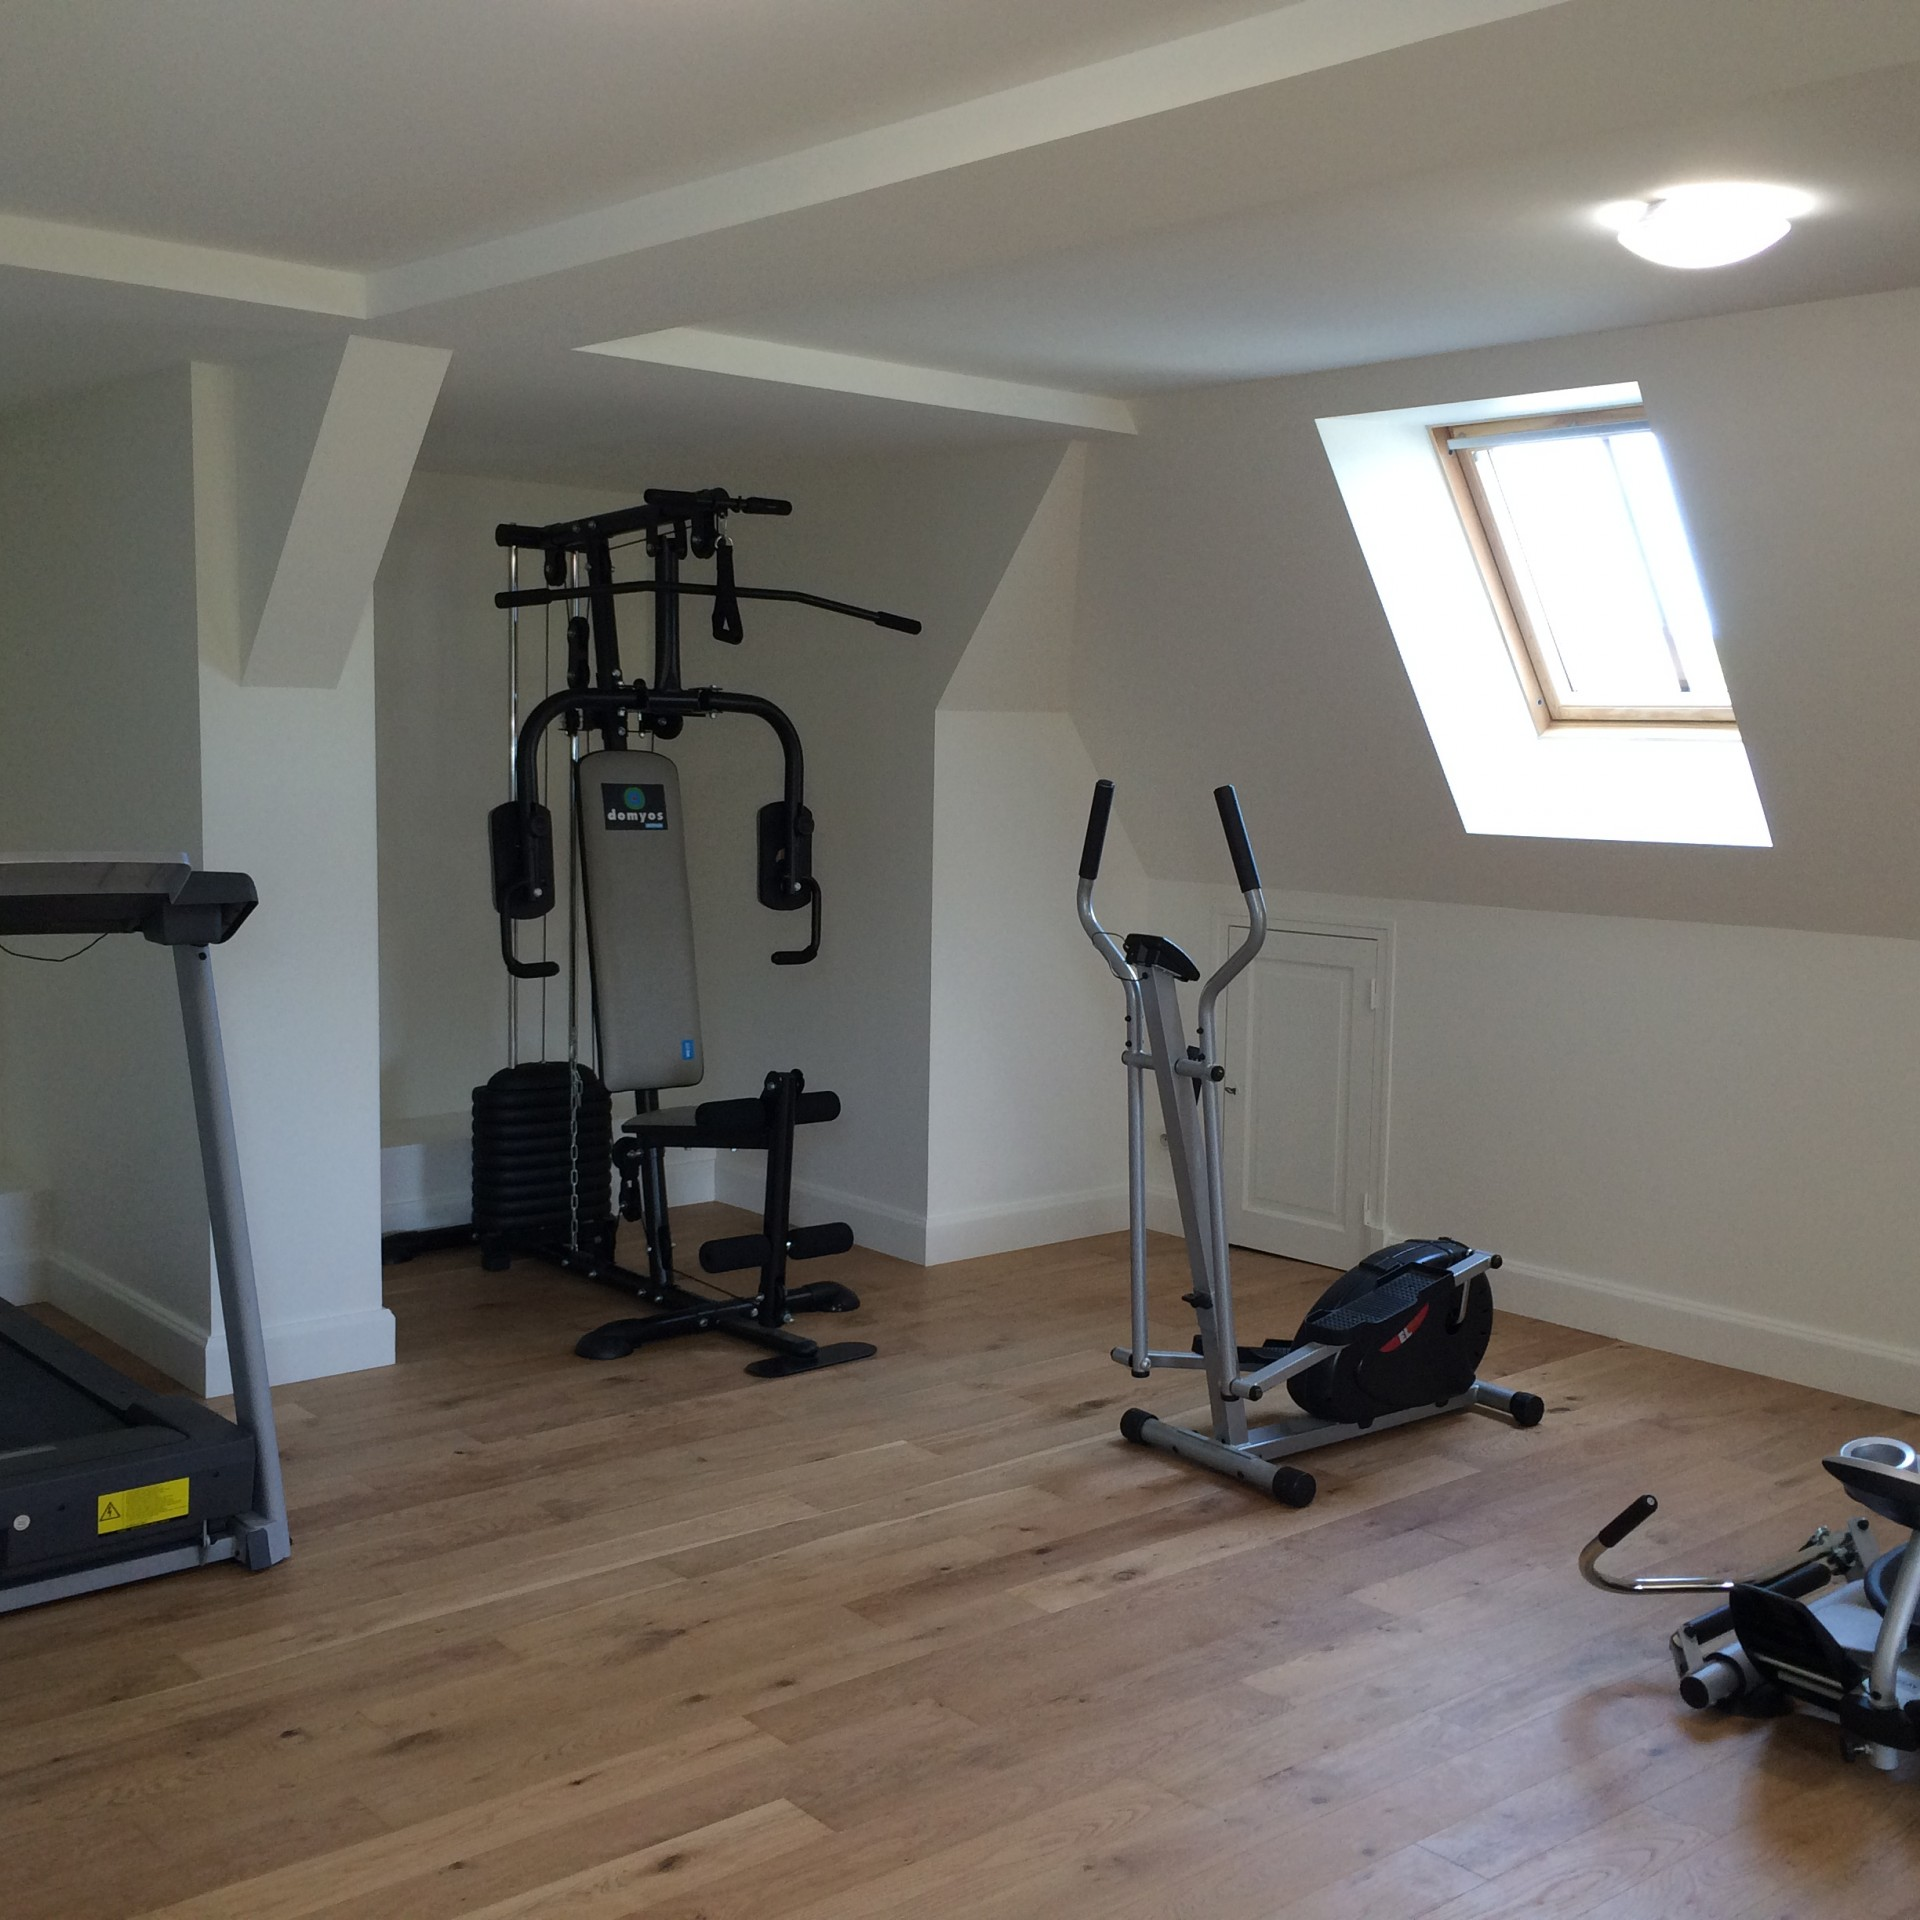 ch-1171-so-salle-fitness-3750